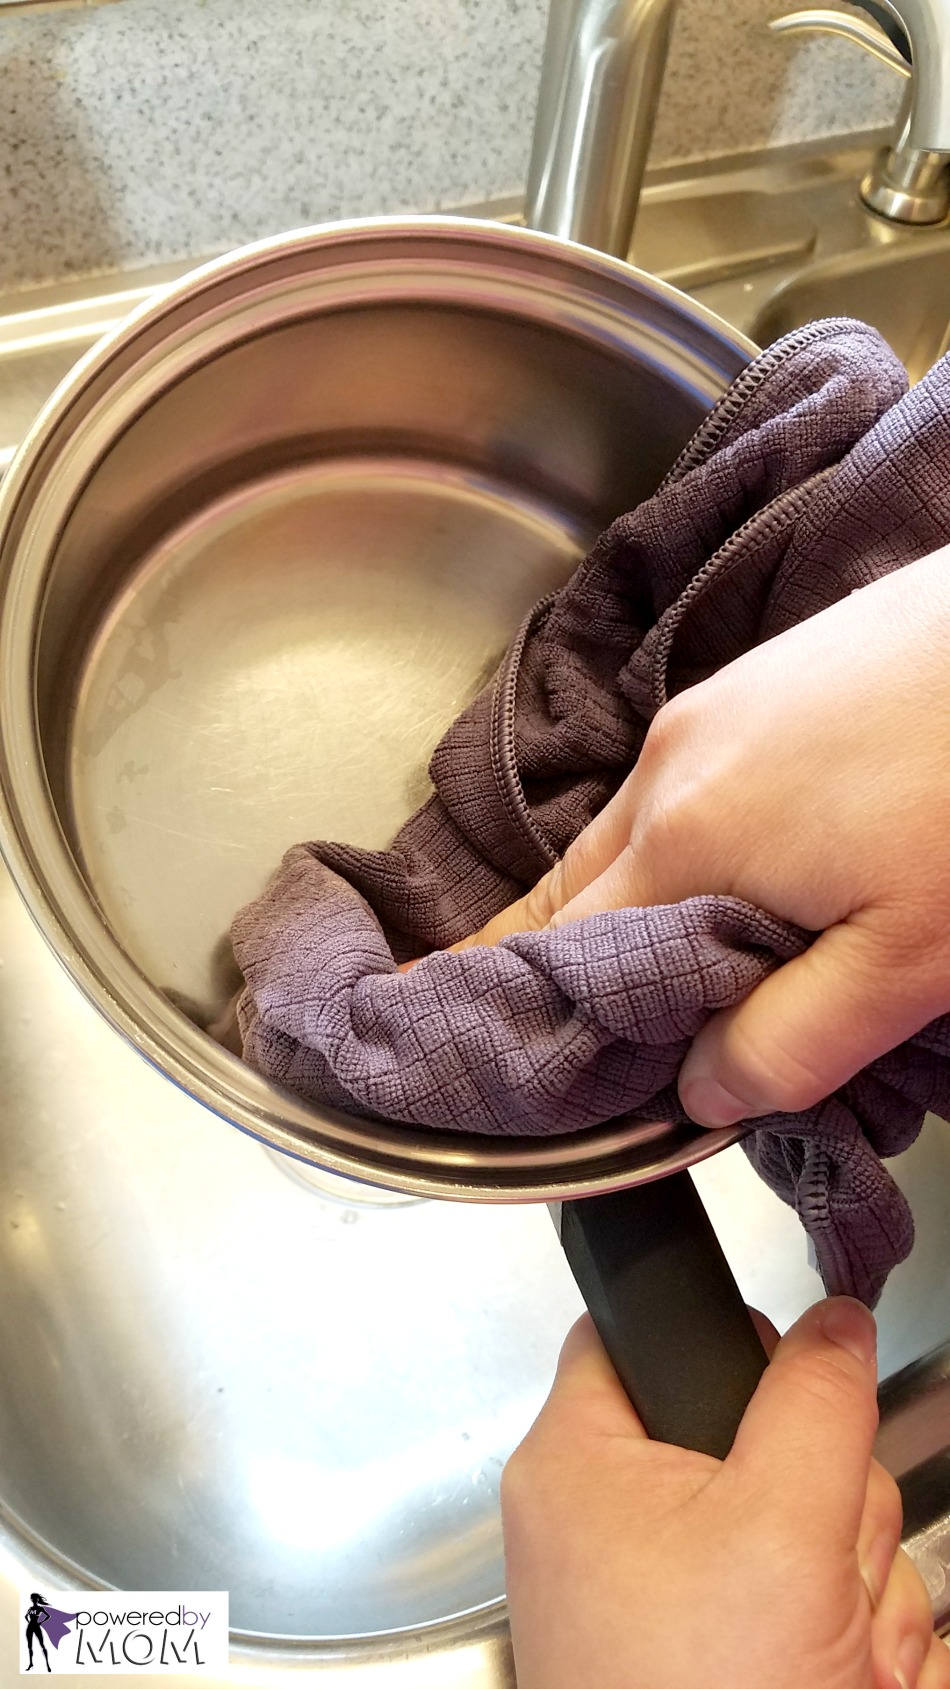 Cleaning Without Chemicals